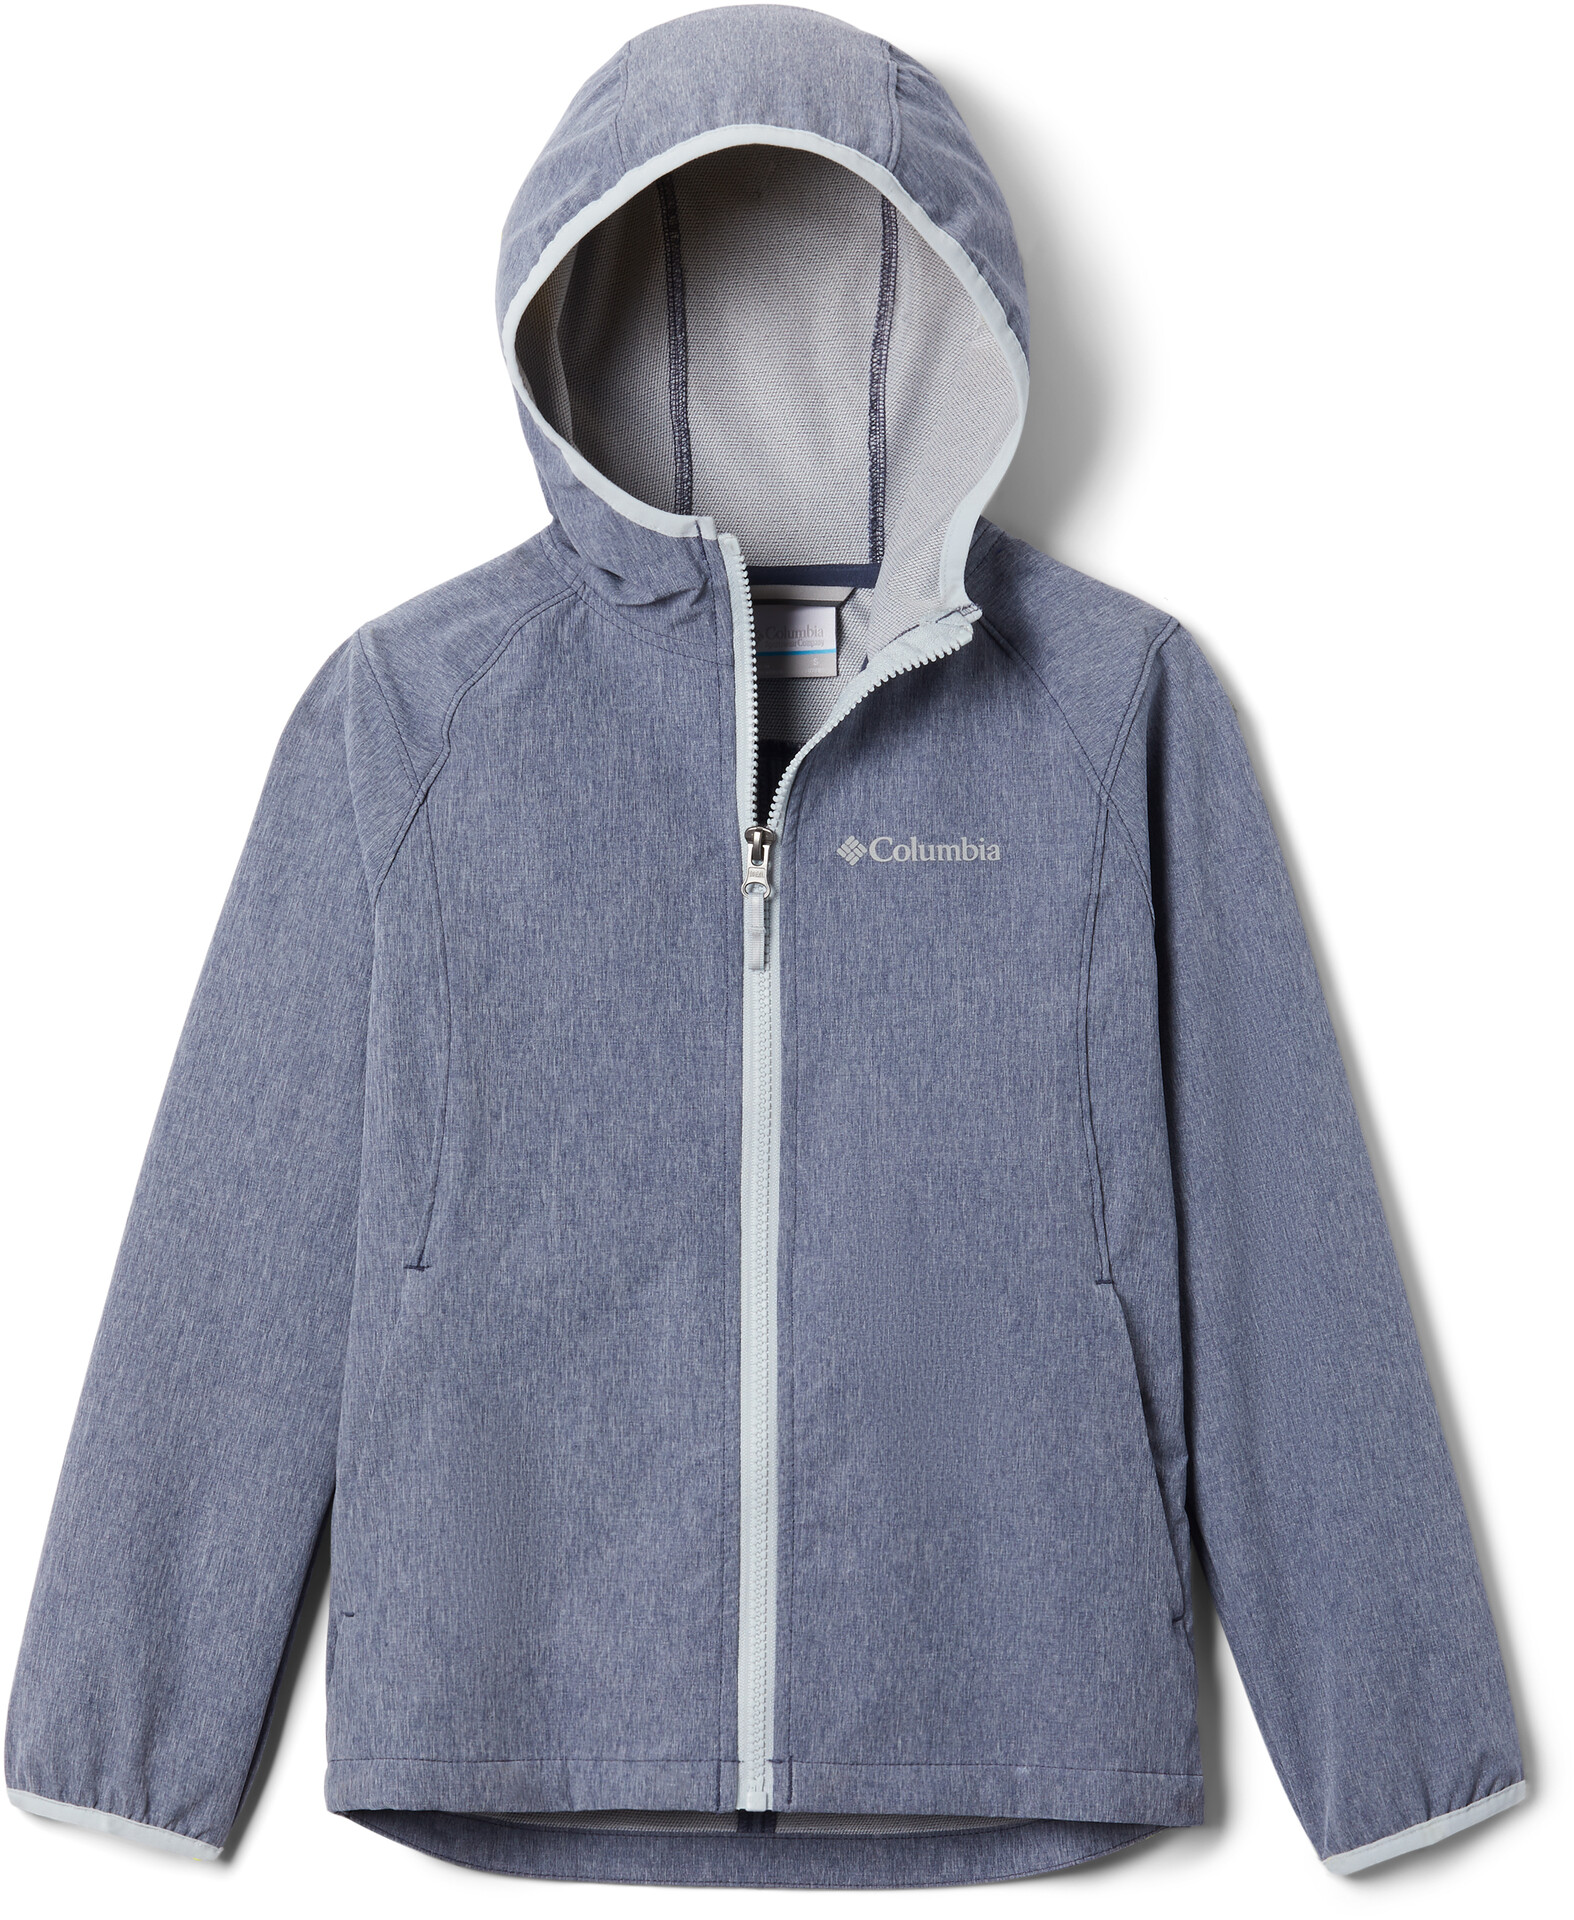 Columbia Rocky Range Softshell Jacke Mädchen nocturnal heathercirrus grey zip and binding